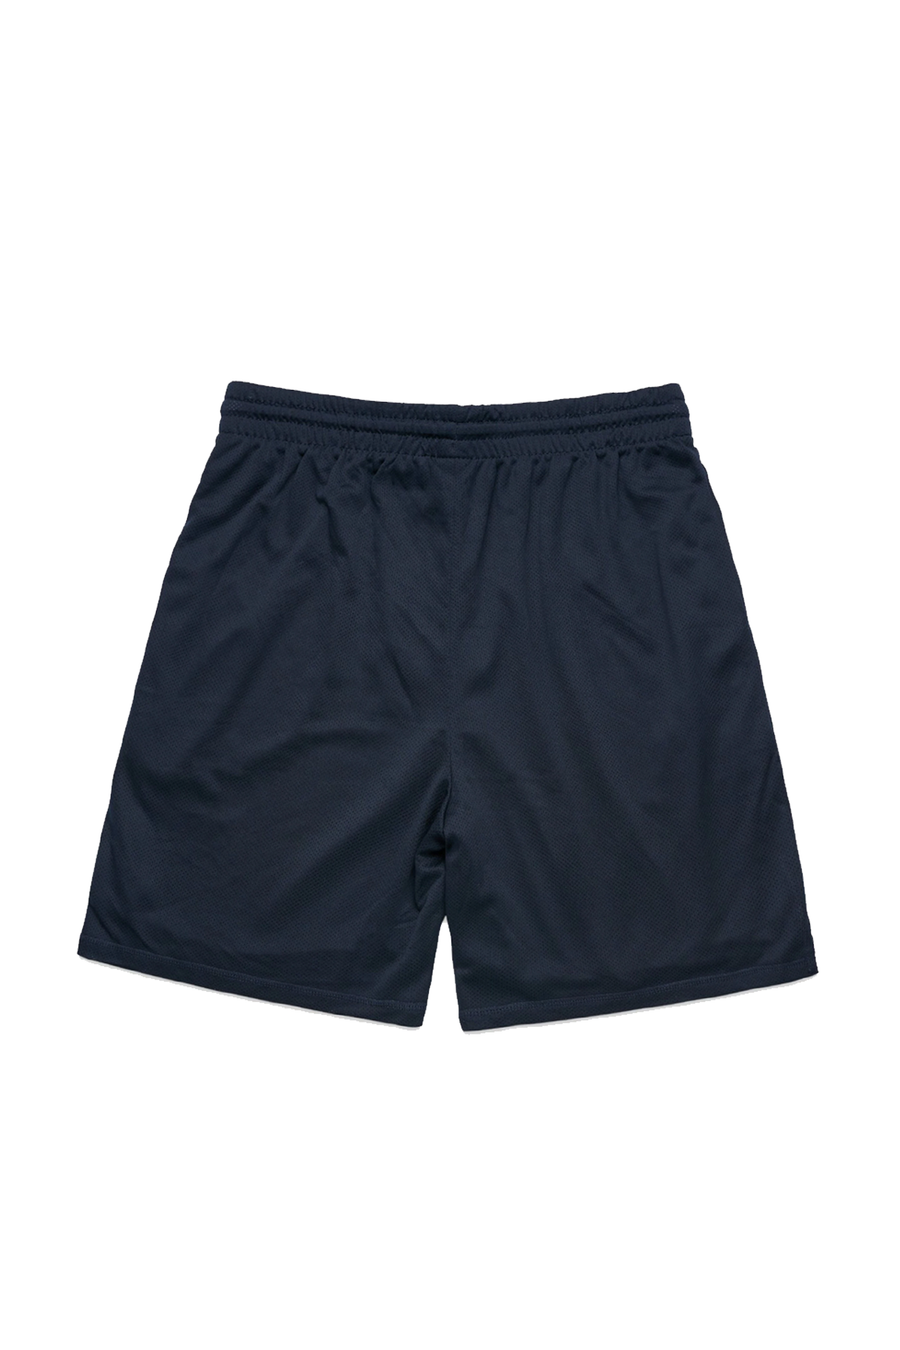 BOYS ARCHIVE X SOMETHING WONDERFUL UTOPIA SHORT - NAVY